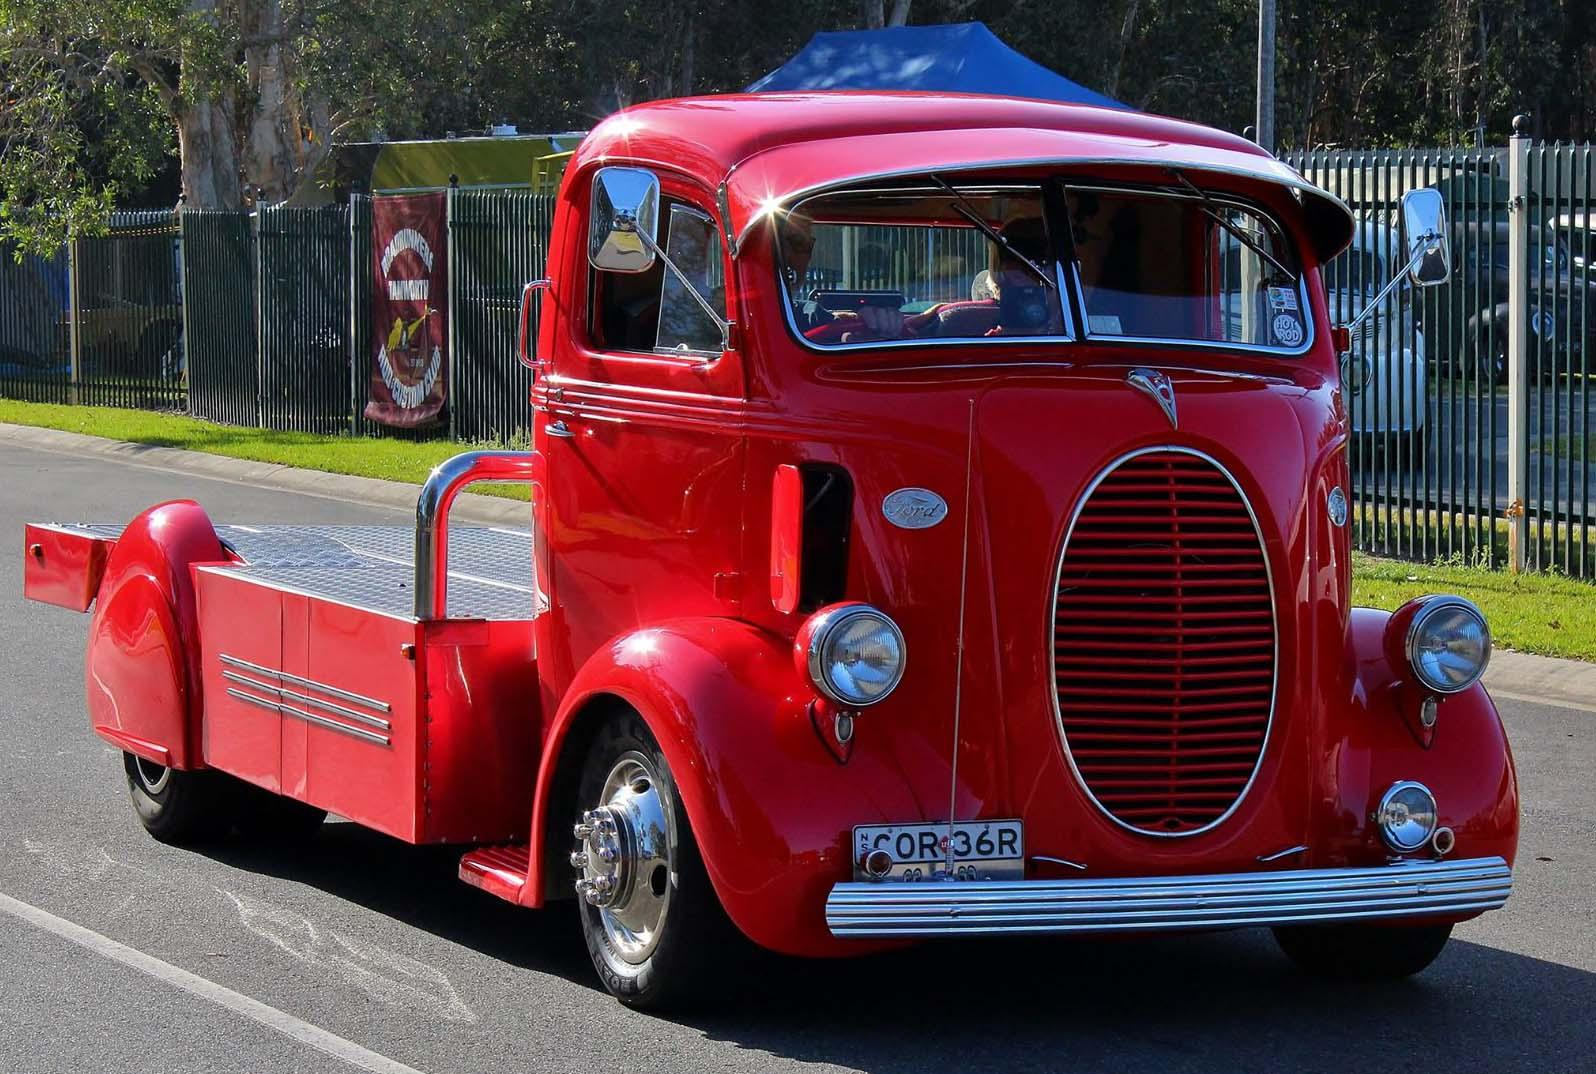 1941 Ford Coe Flatbed Truck - JCW5039121 - JUST CARS